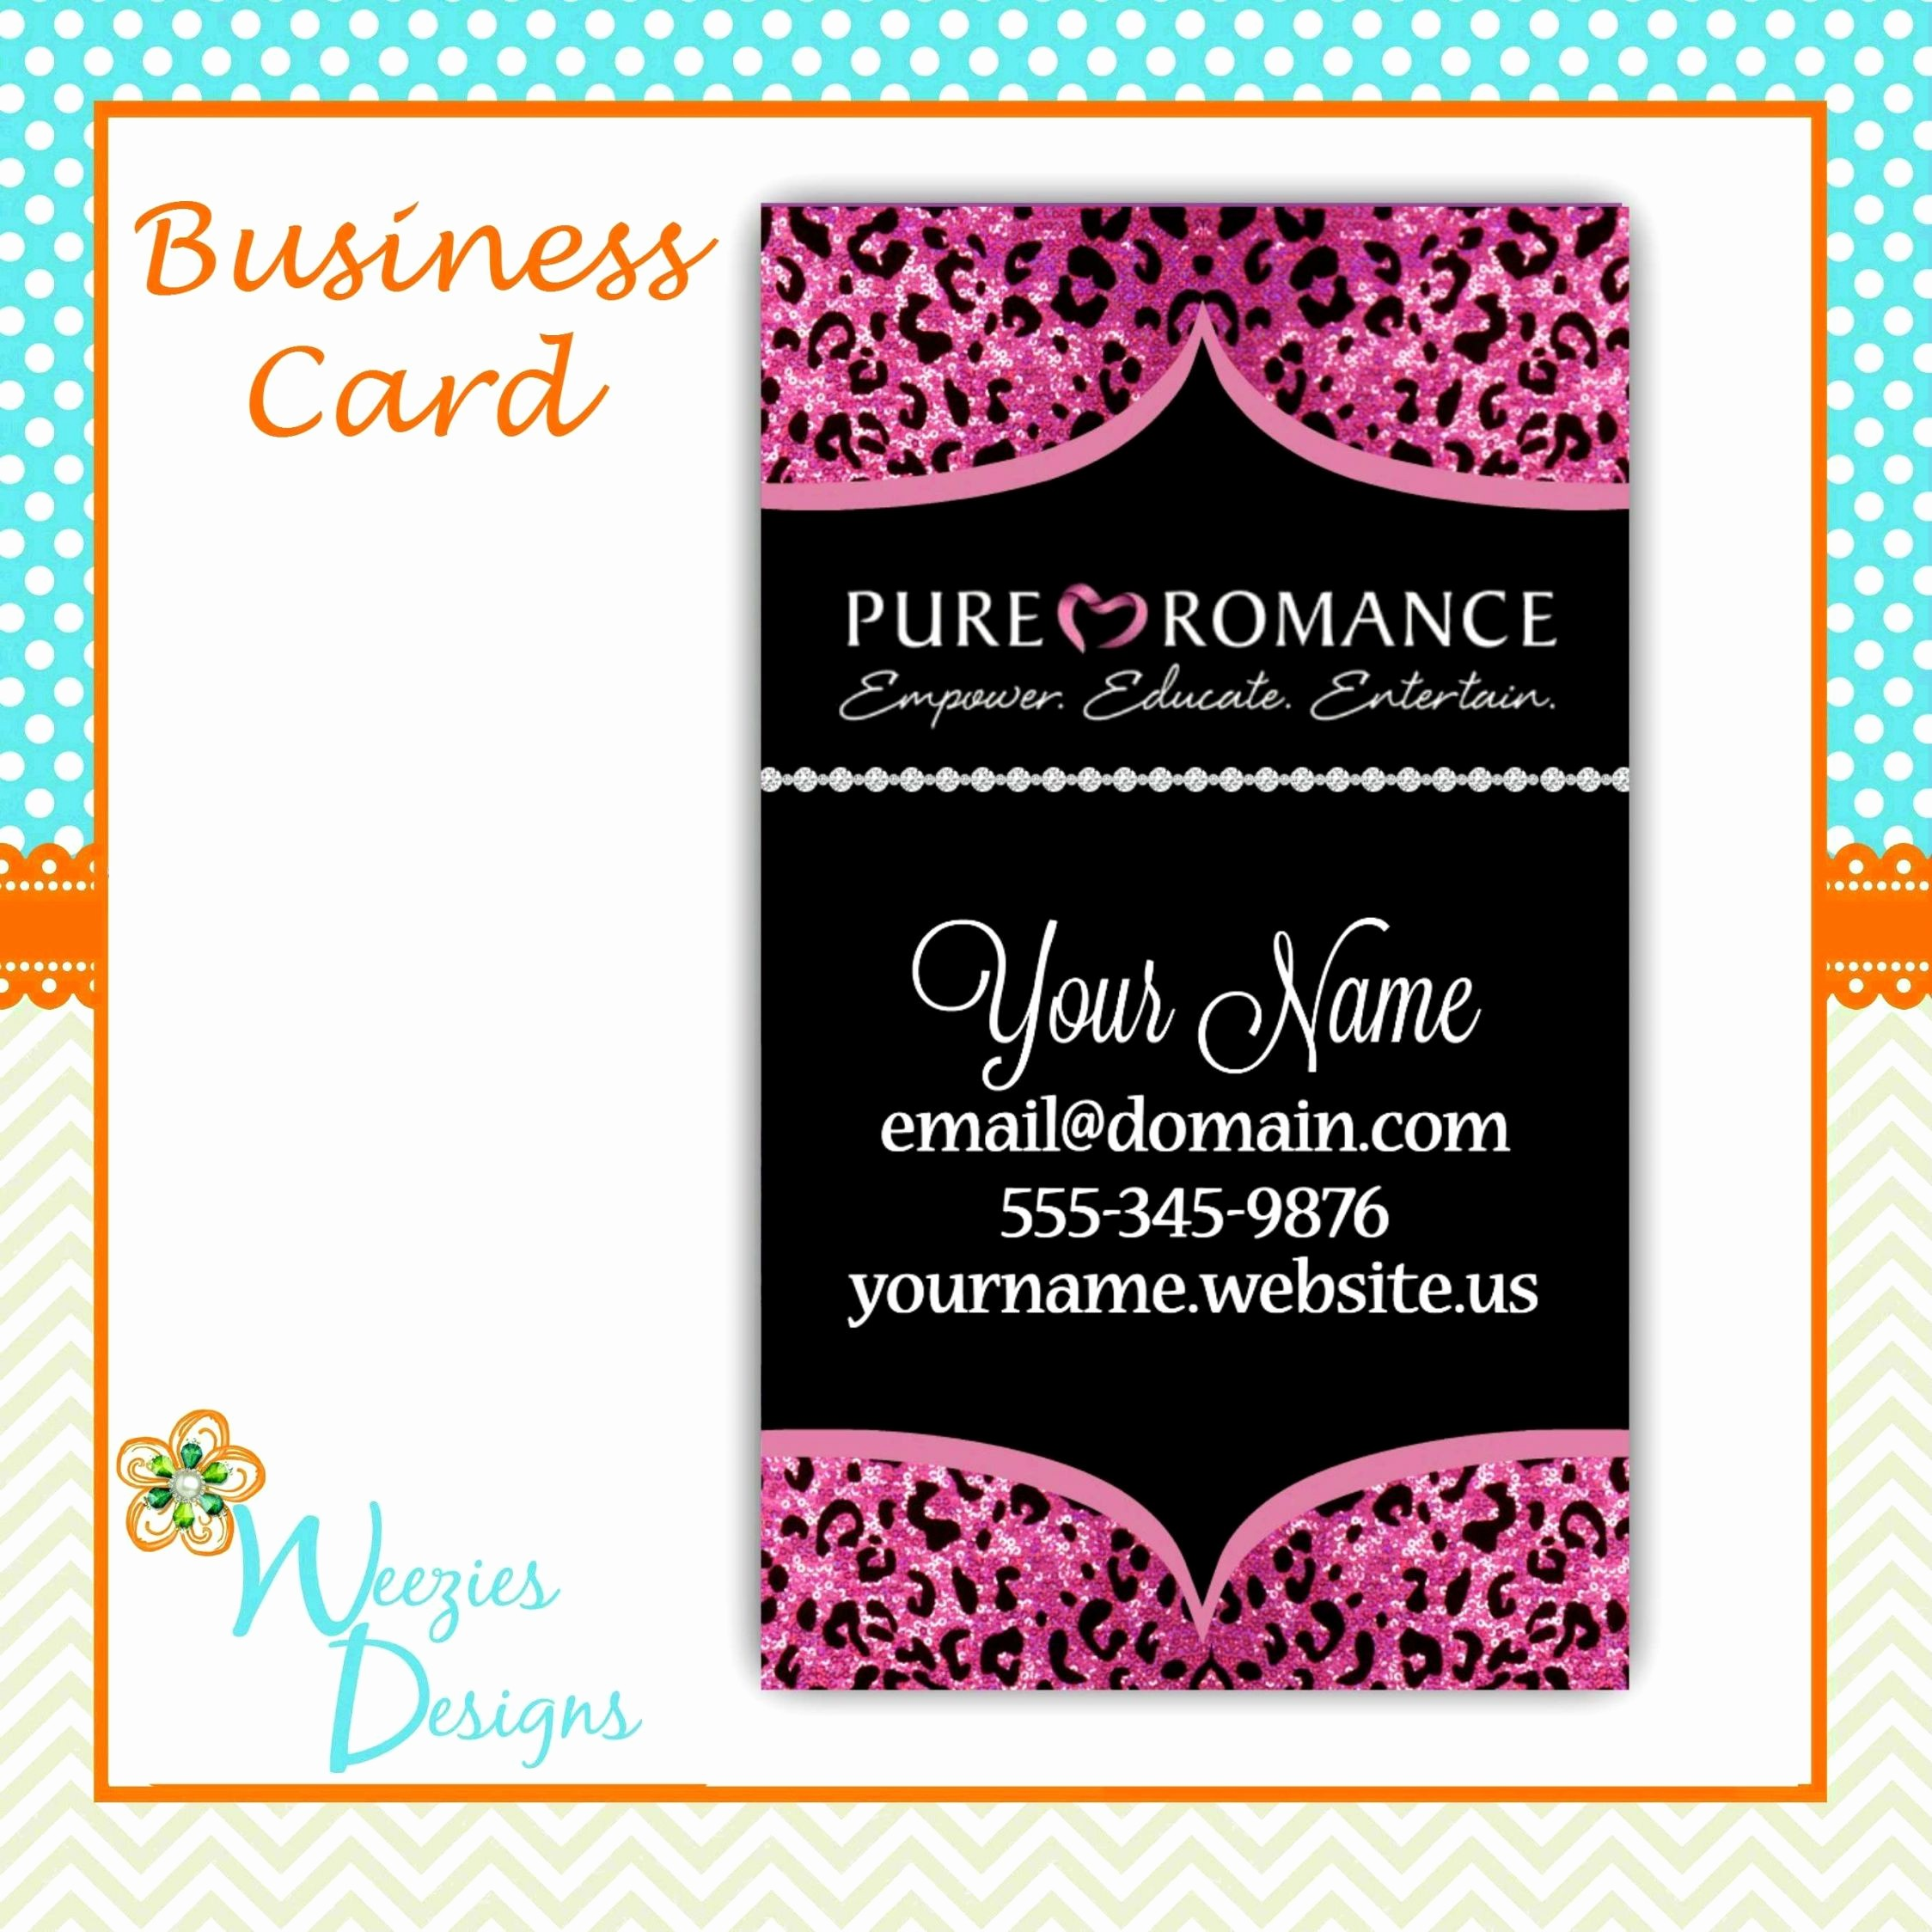 Business Card Template Free Printable Best Of Doterra Business Card Template Printable Free Printable